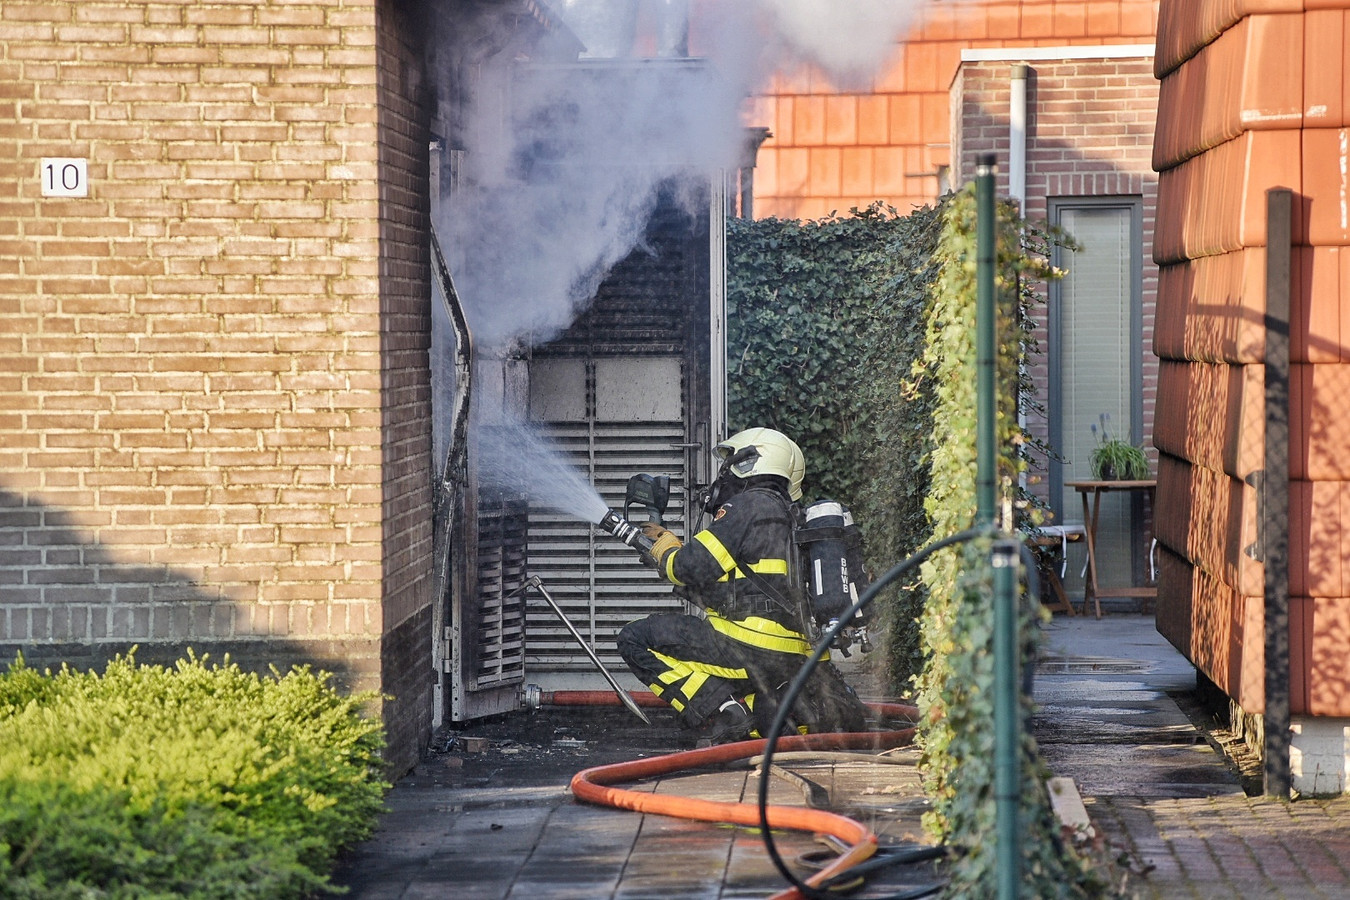 Brand in transformatorhuisje in Dongen